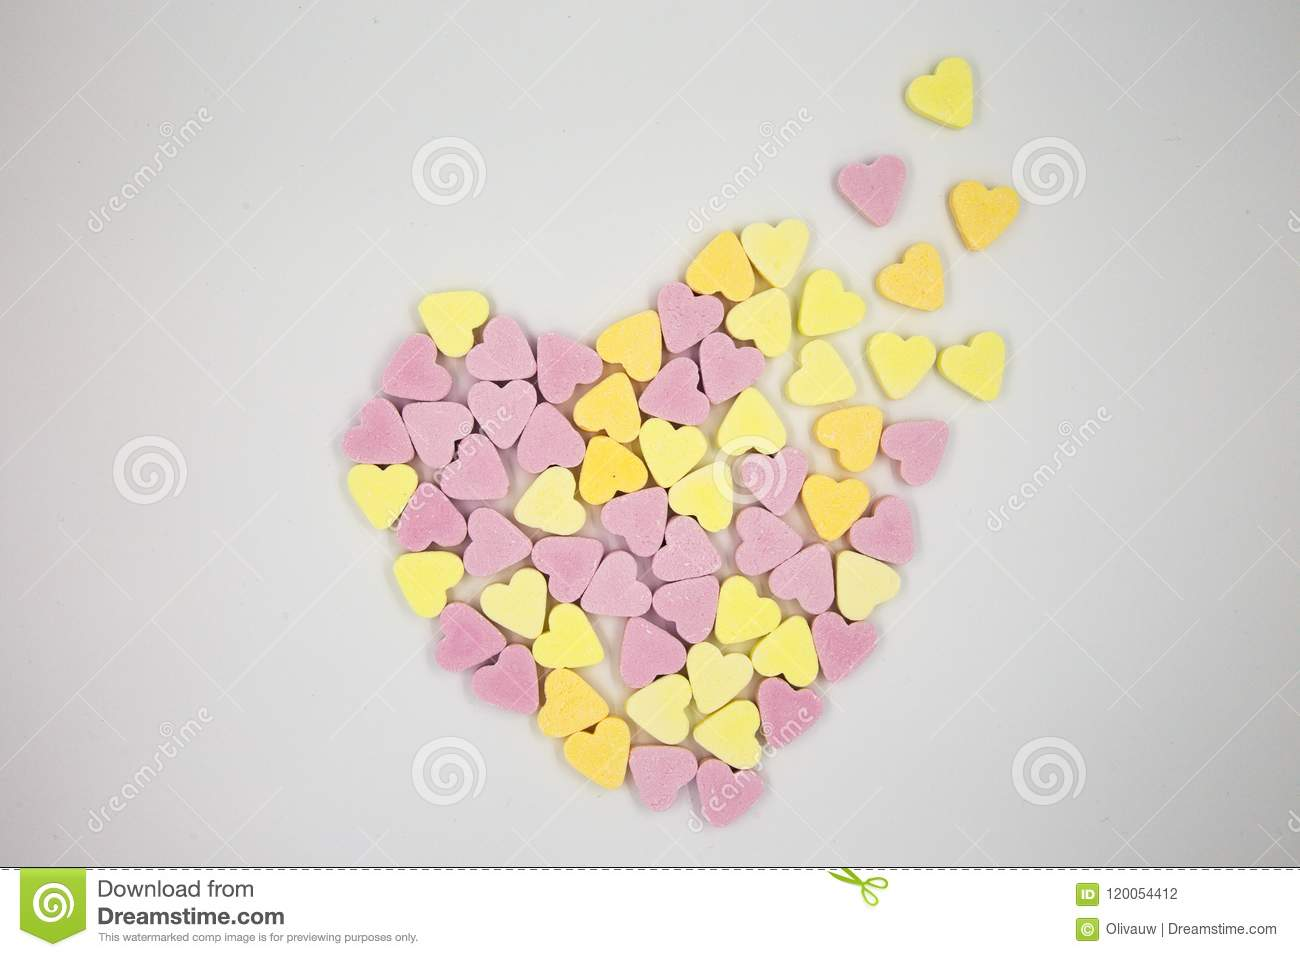 Distingerating Candy Heart